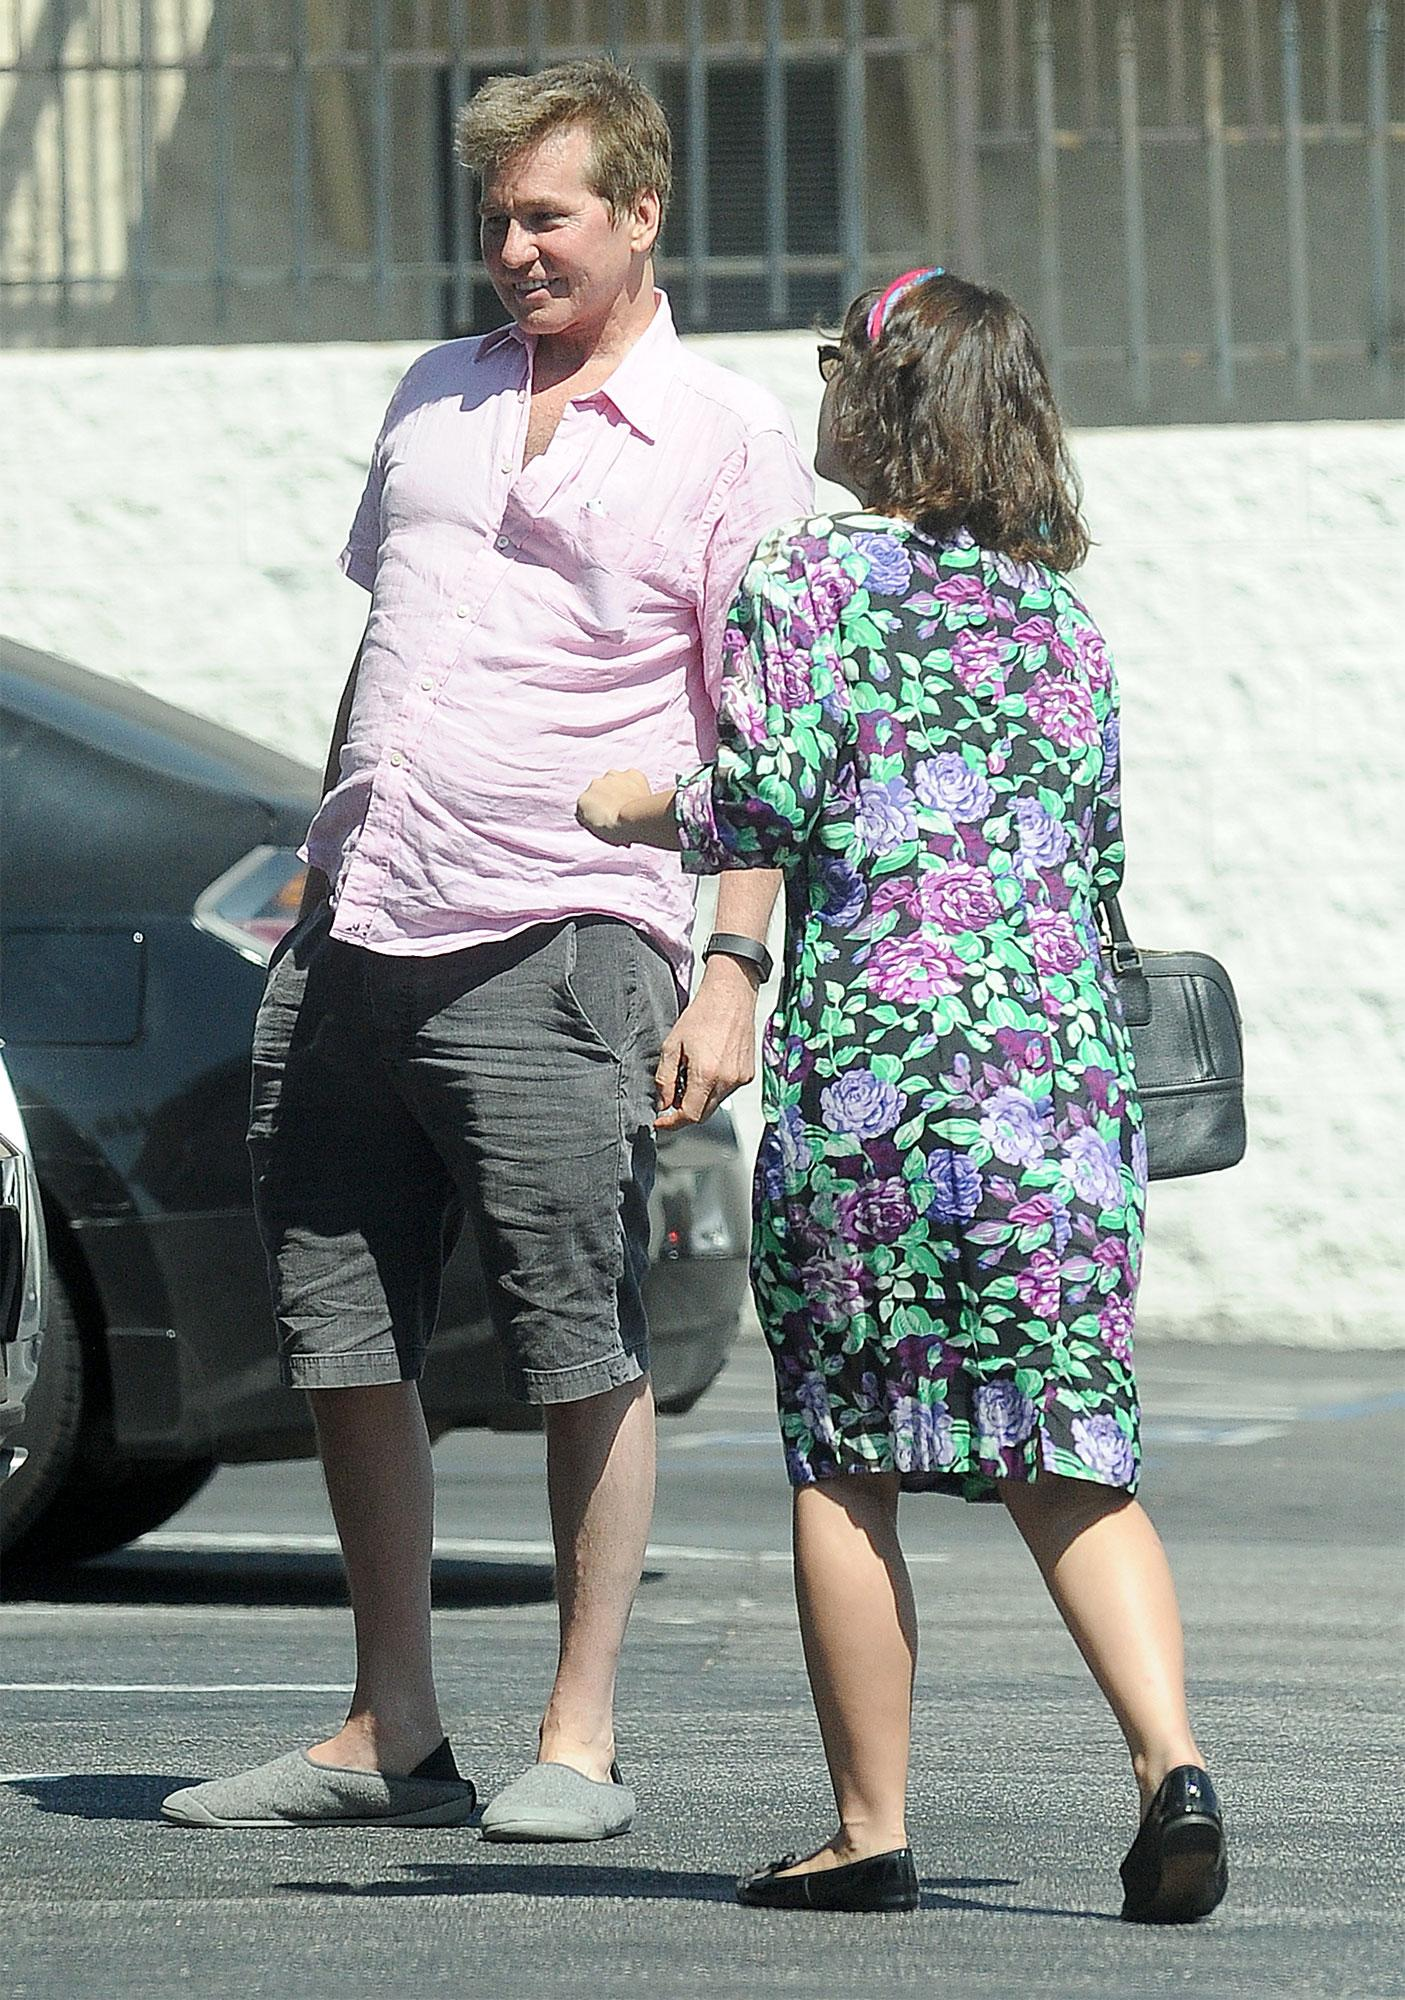 val kilmer steps out looking healthy while preparing to